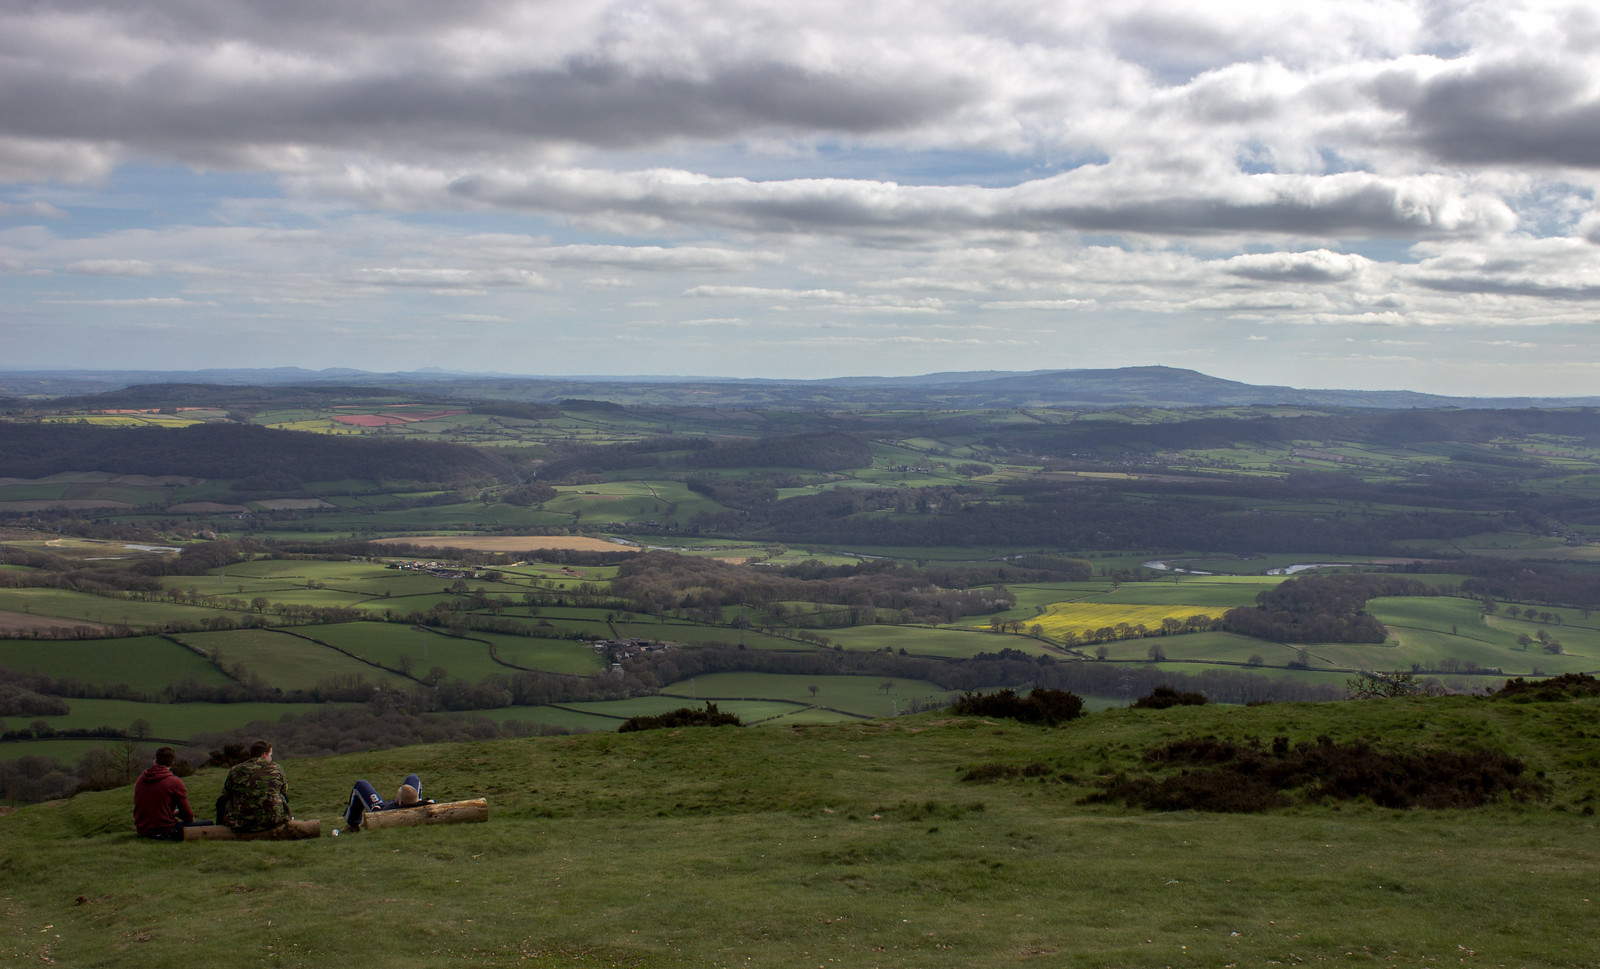 The view from the Wrekin